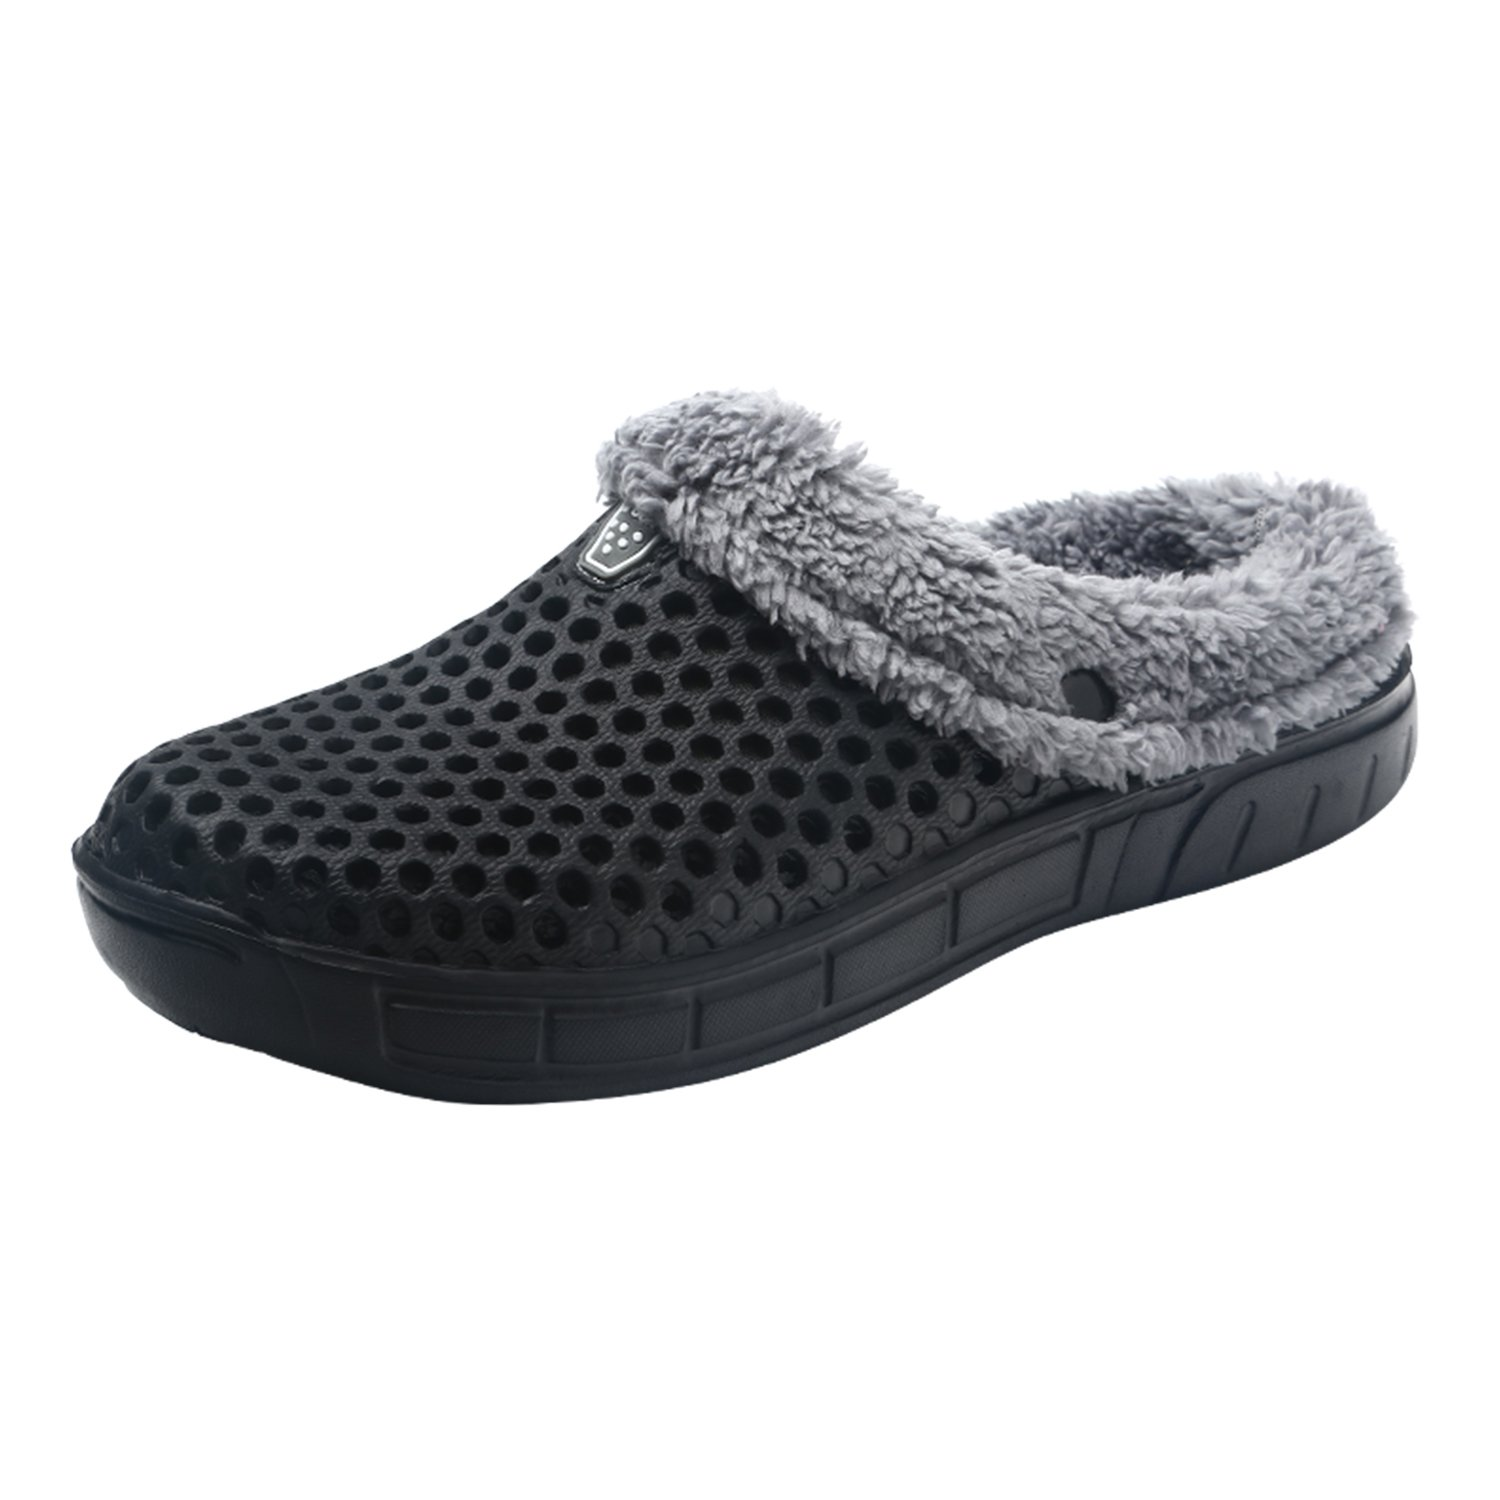 Men's Women's Breathable Mesh Lined Beach Outdoor Walking Garden Clogs Slippers